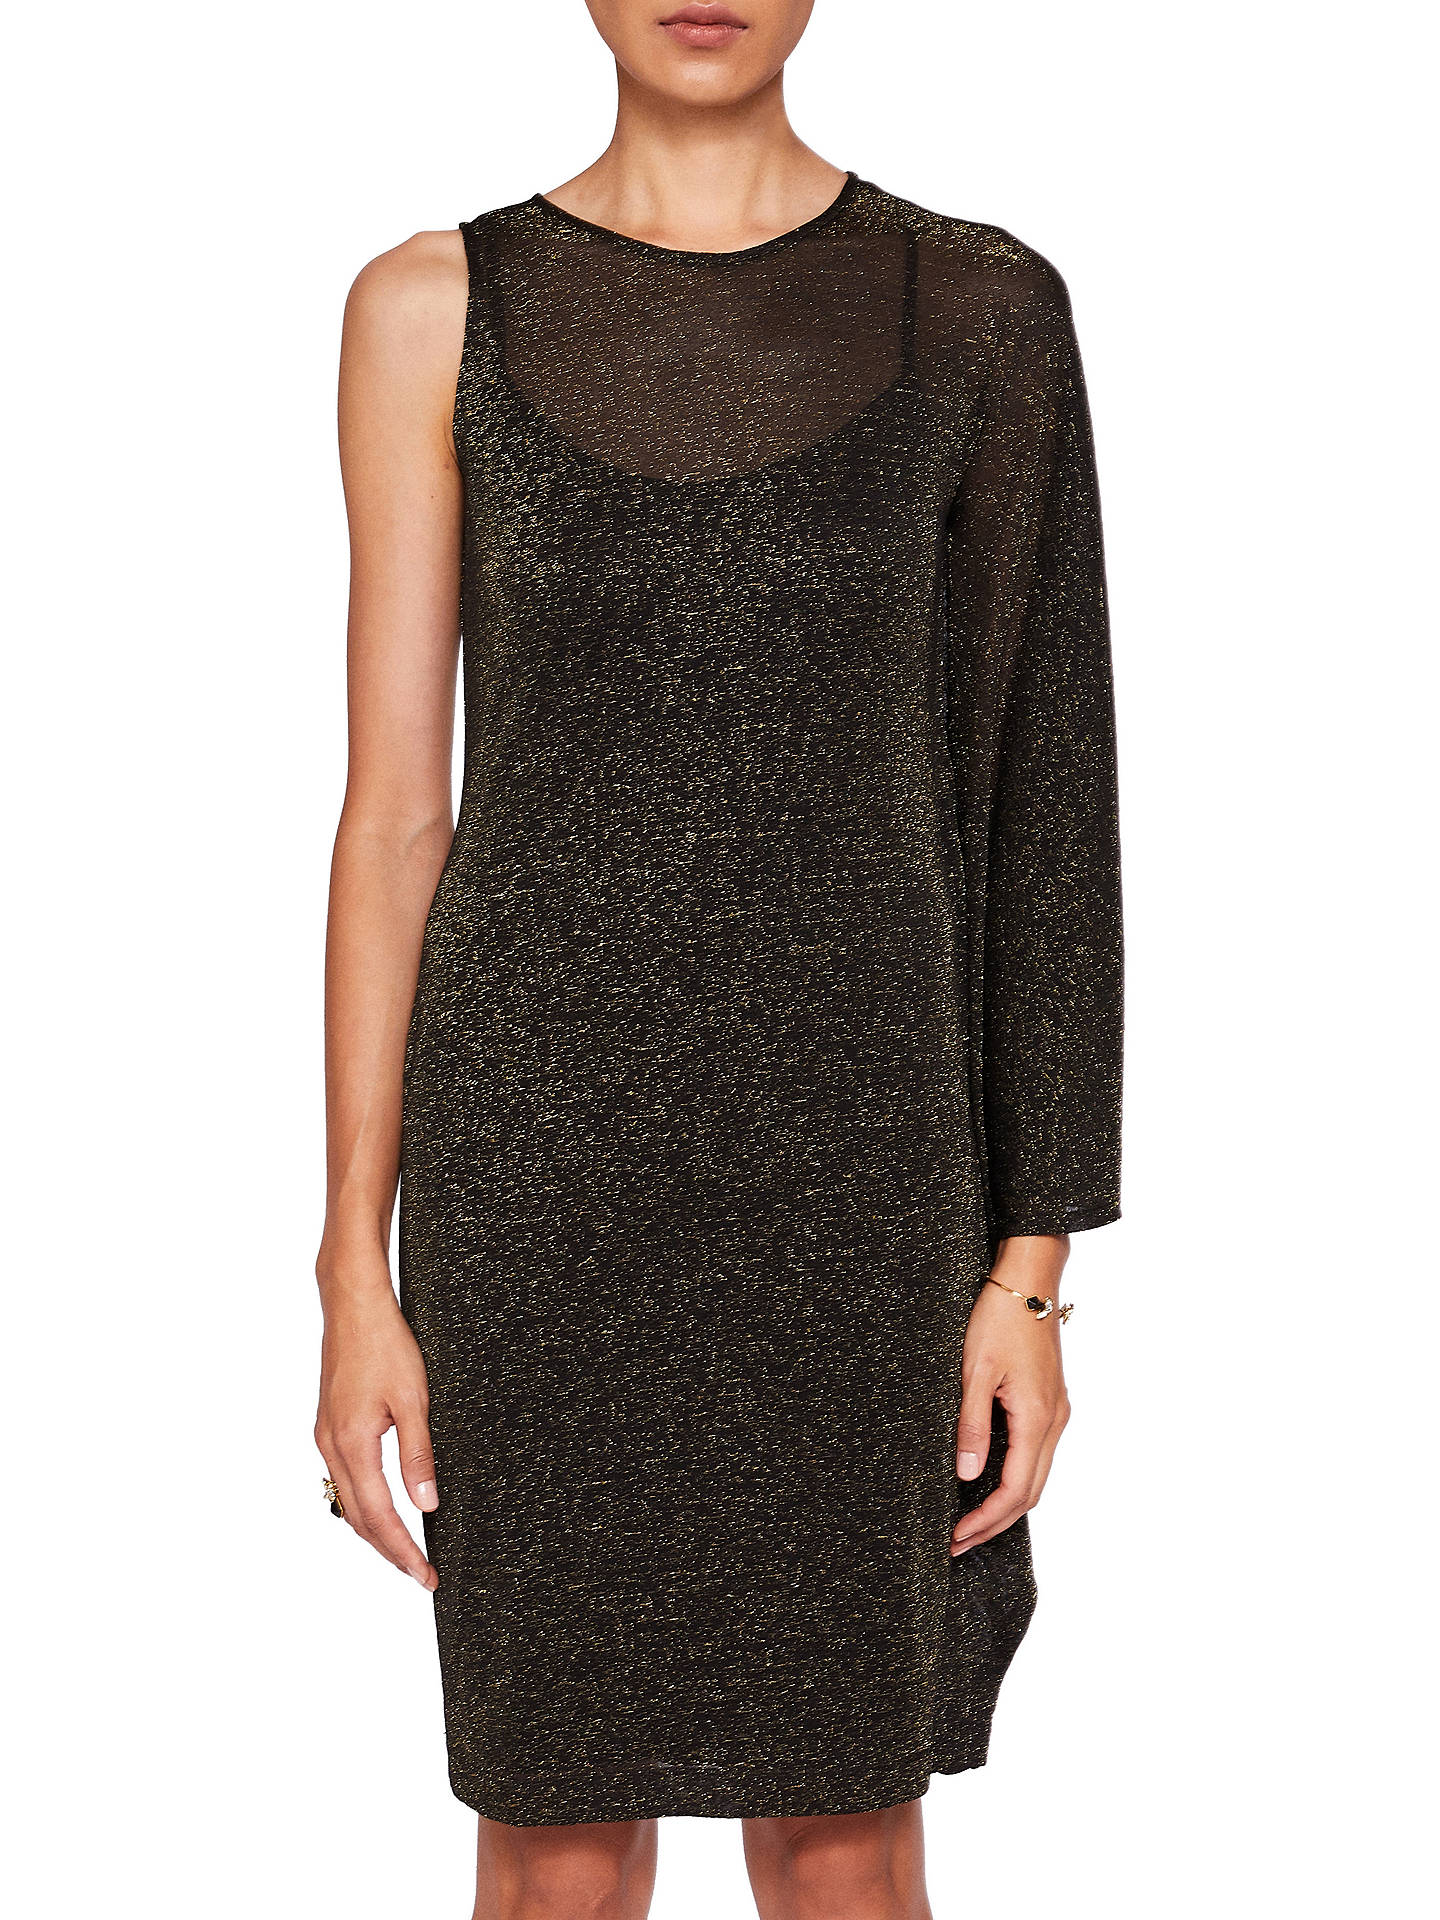 6144d486c5b50 Buy Ted Baker Monyca Draped One Shoulder Sparkly Dress